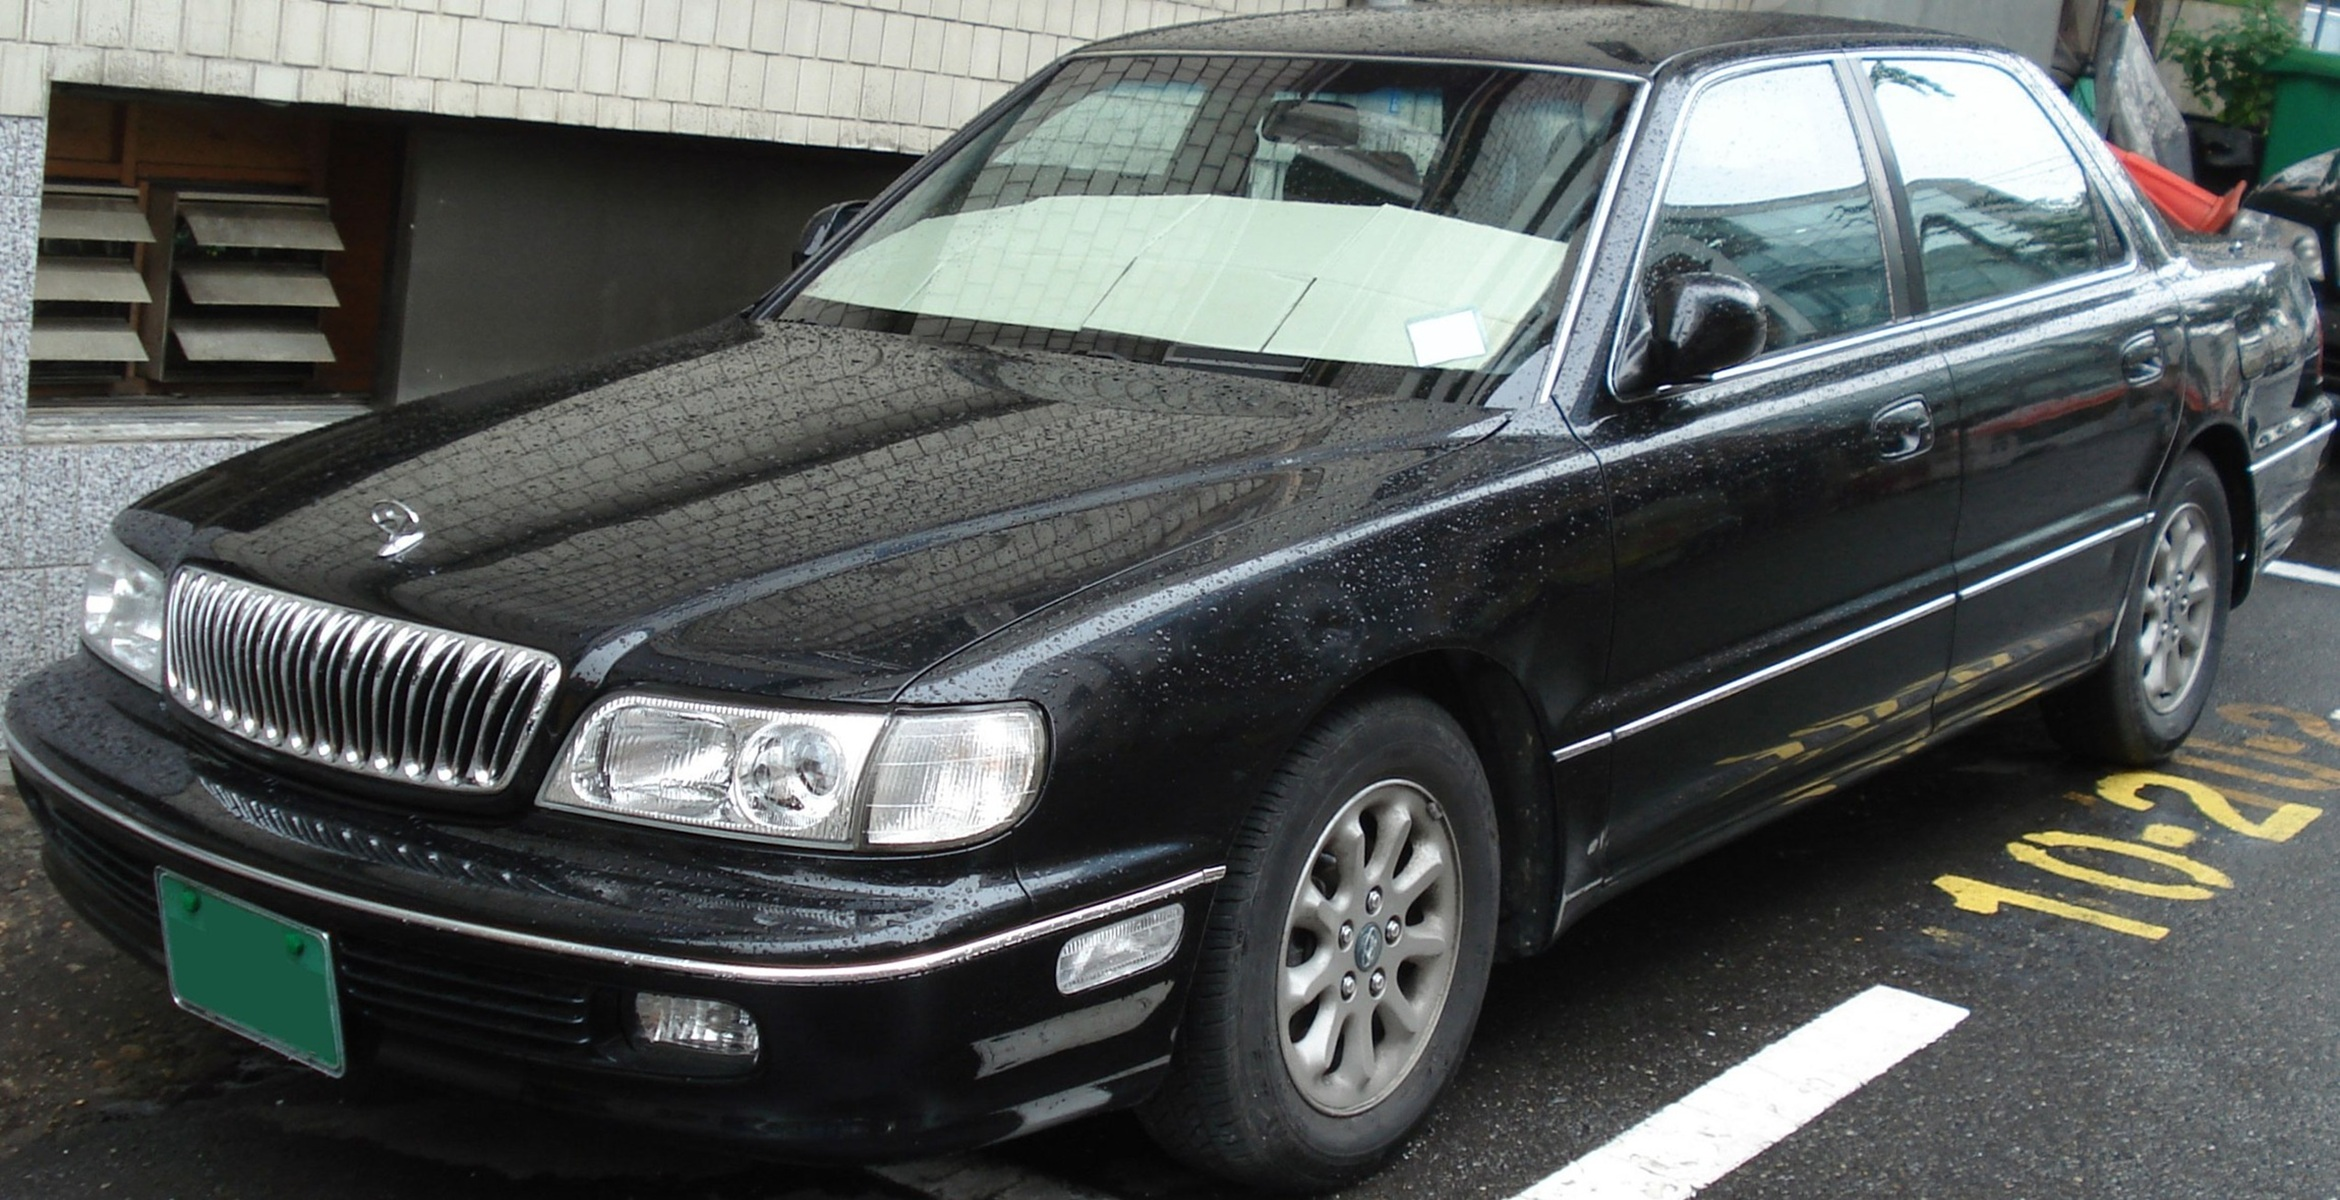 Hyundai Grandeur 3.0 2002 photo - 3